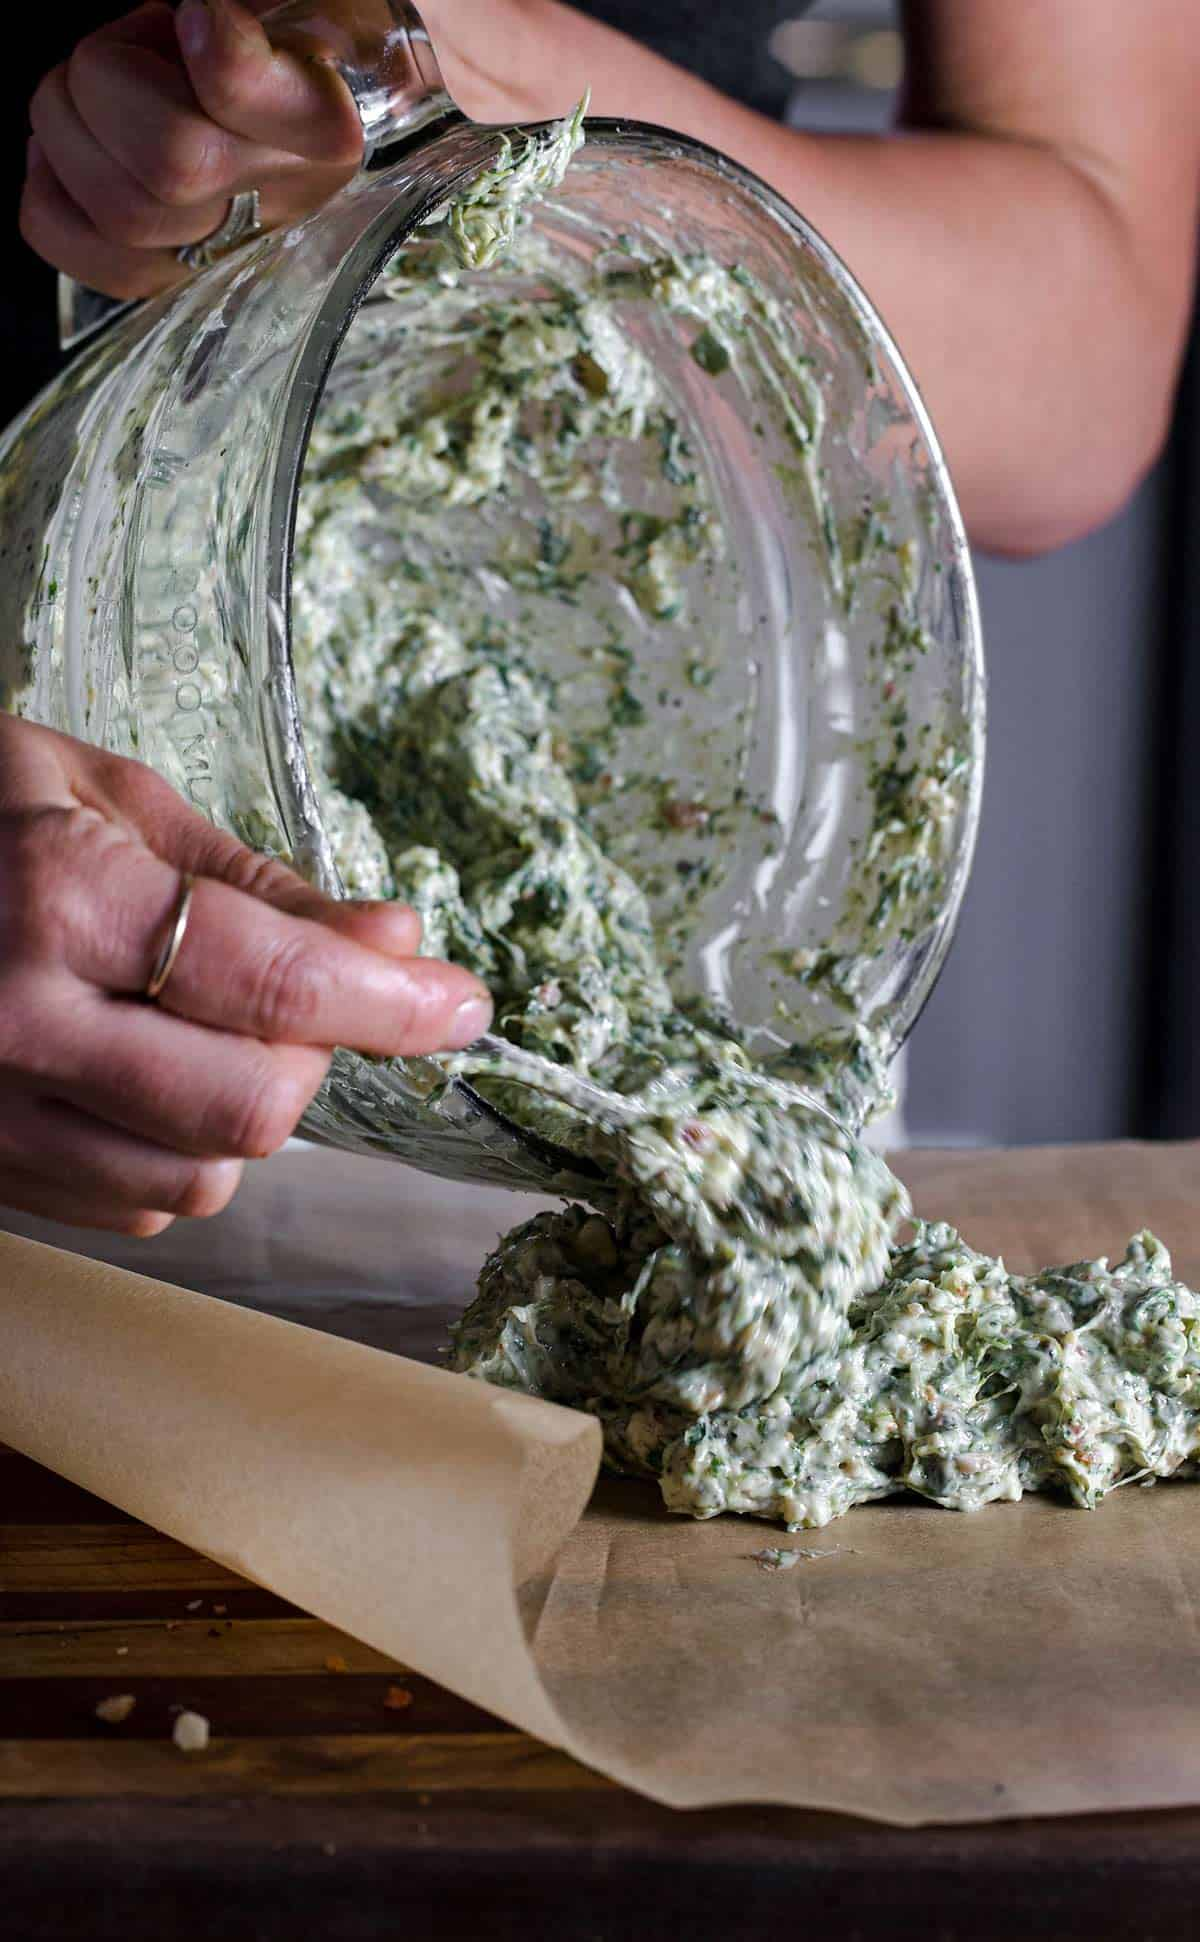 How to make bacon blue cheese compound butter